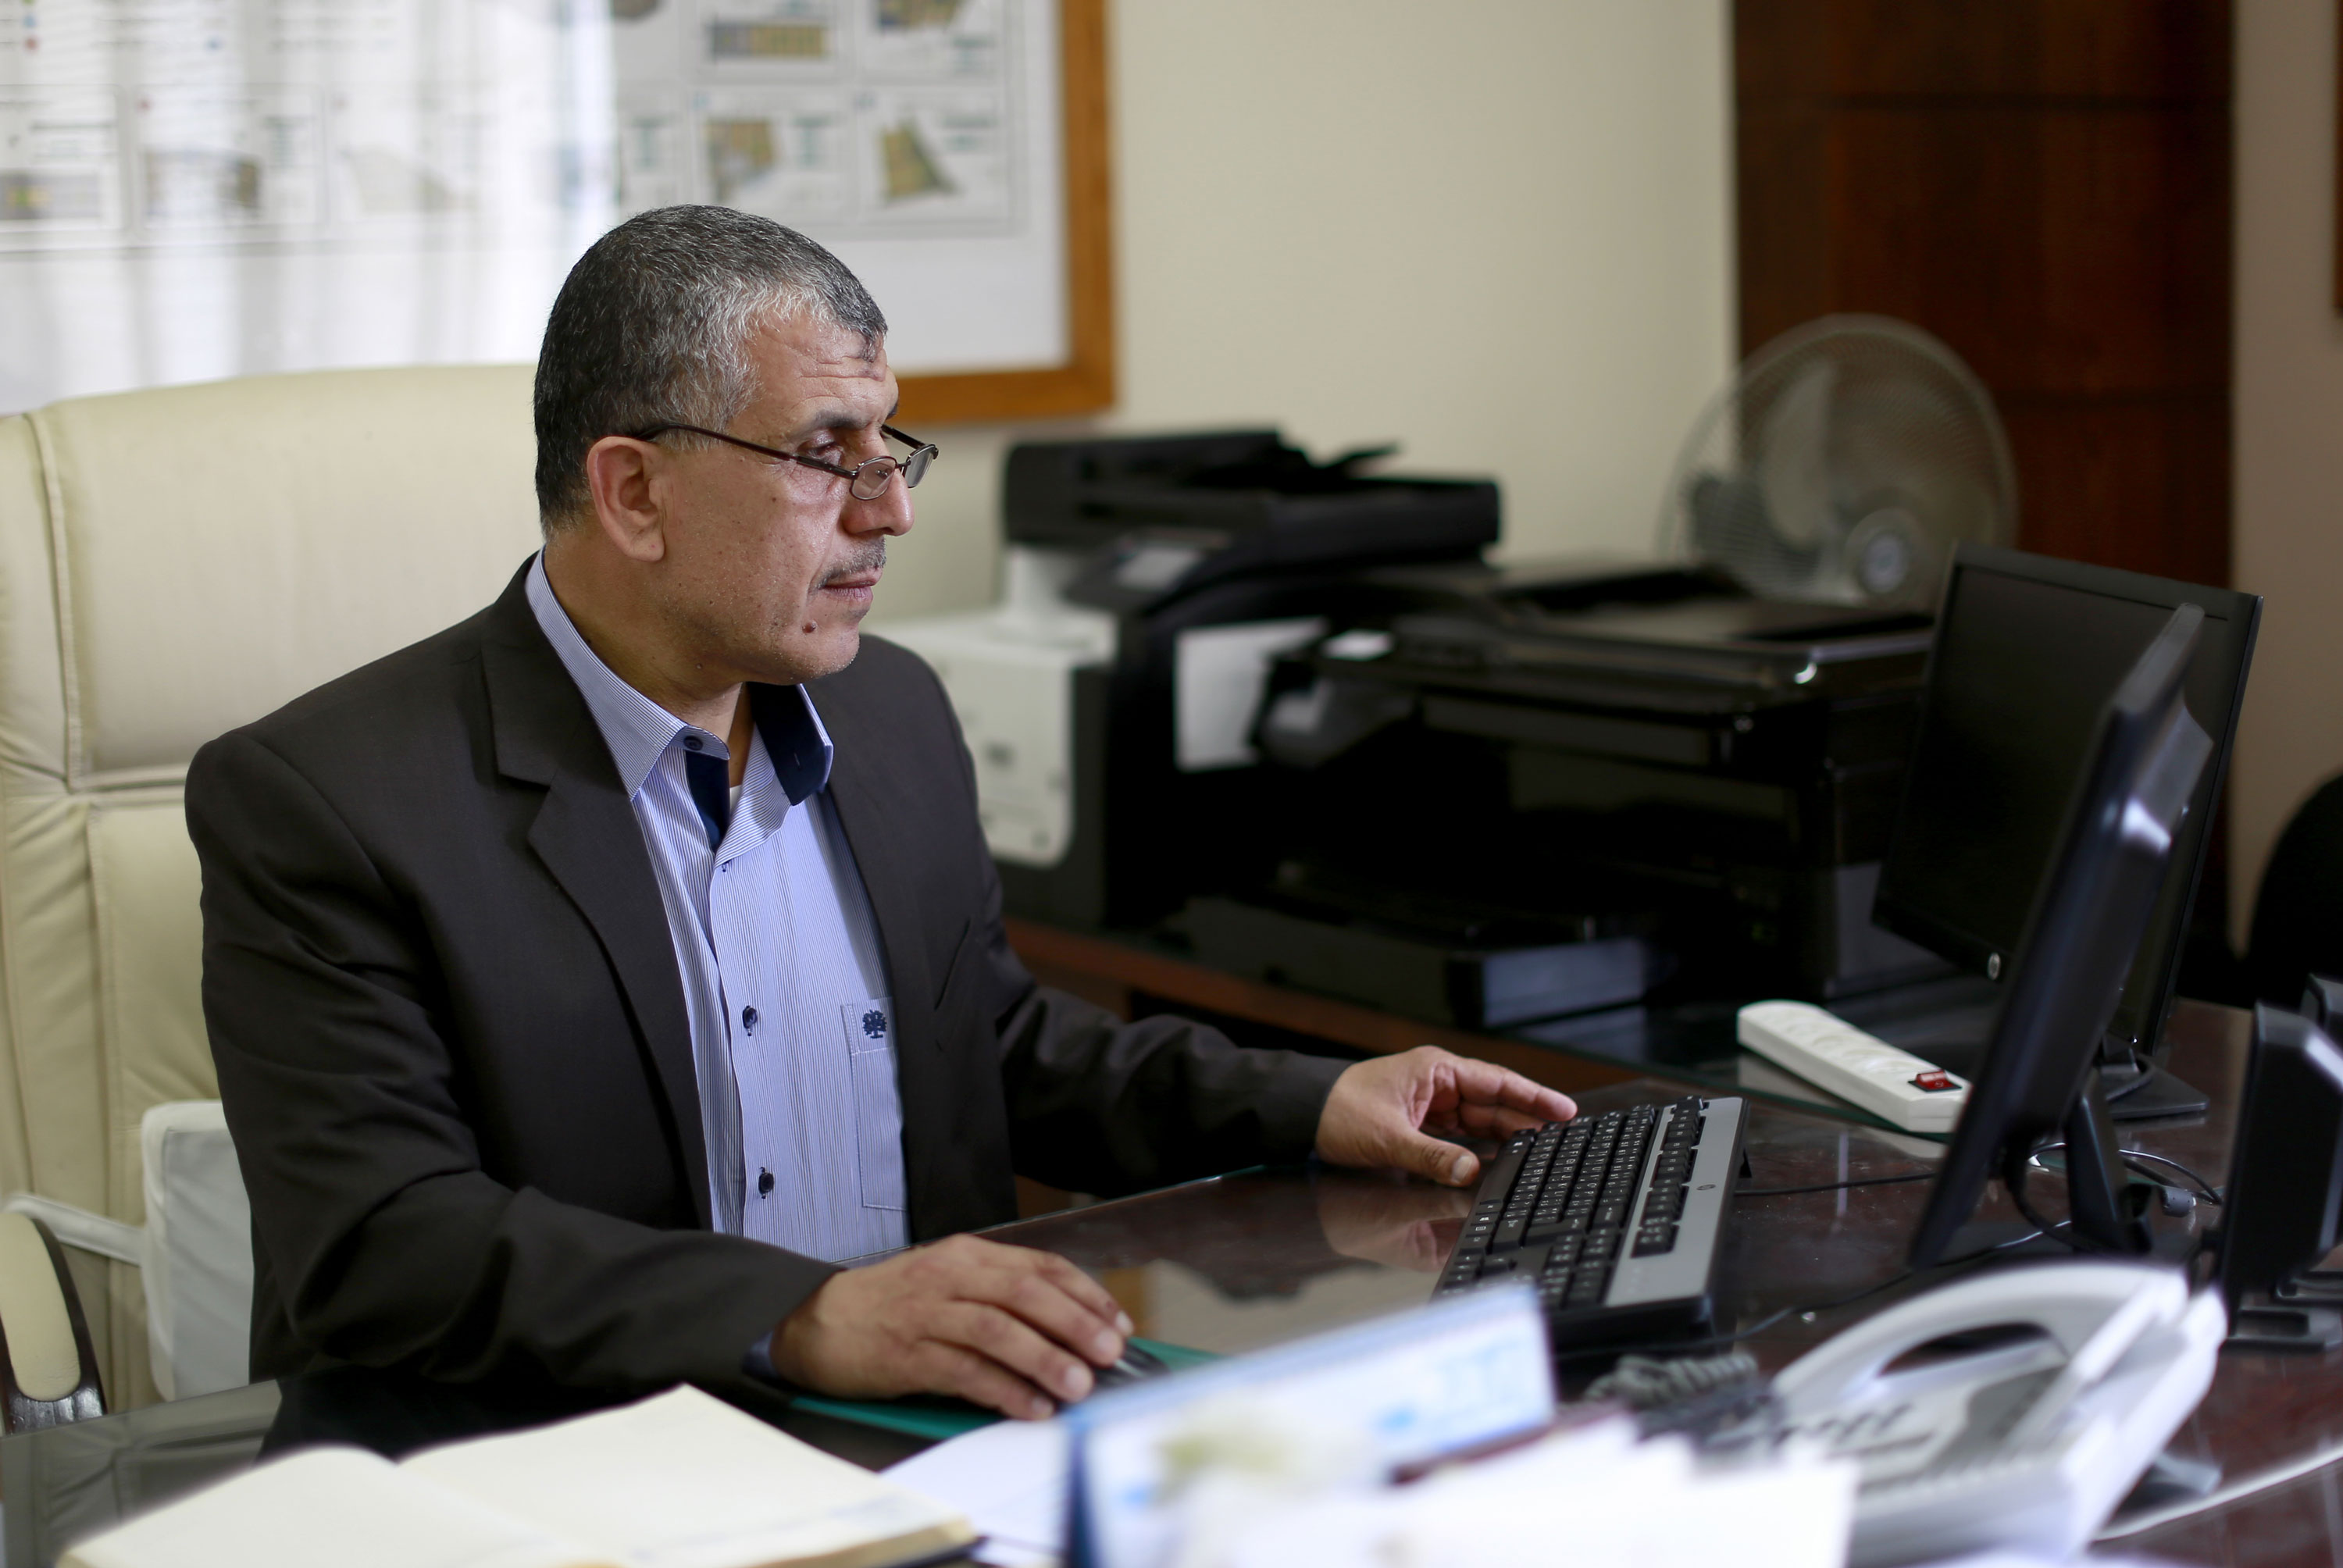 Gaza situation report 191 unrwa - Chief infrastructure officer ...